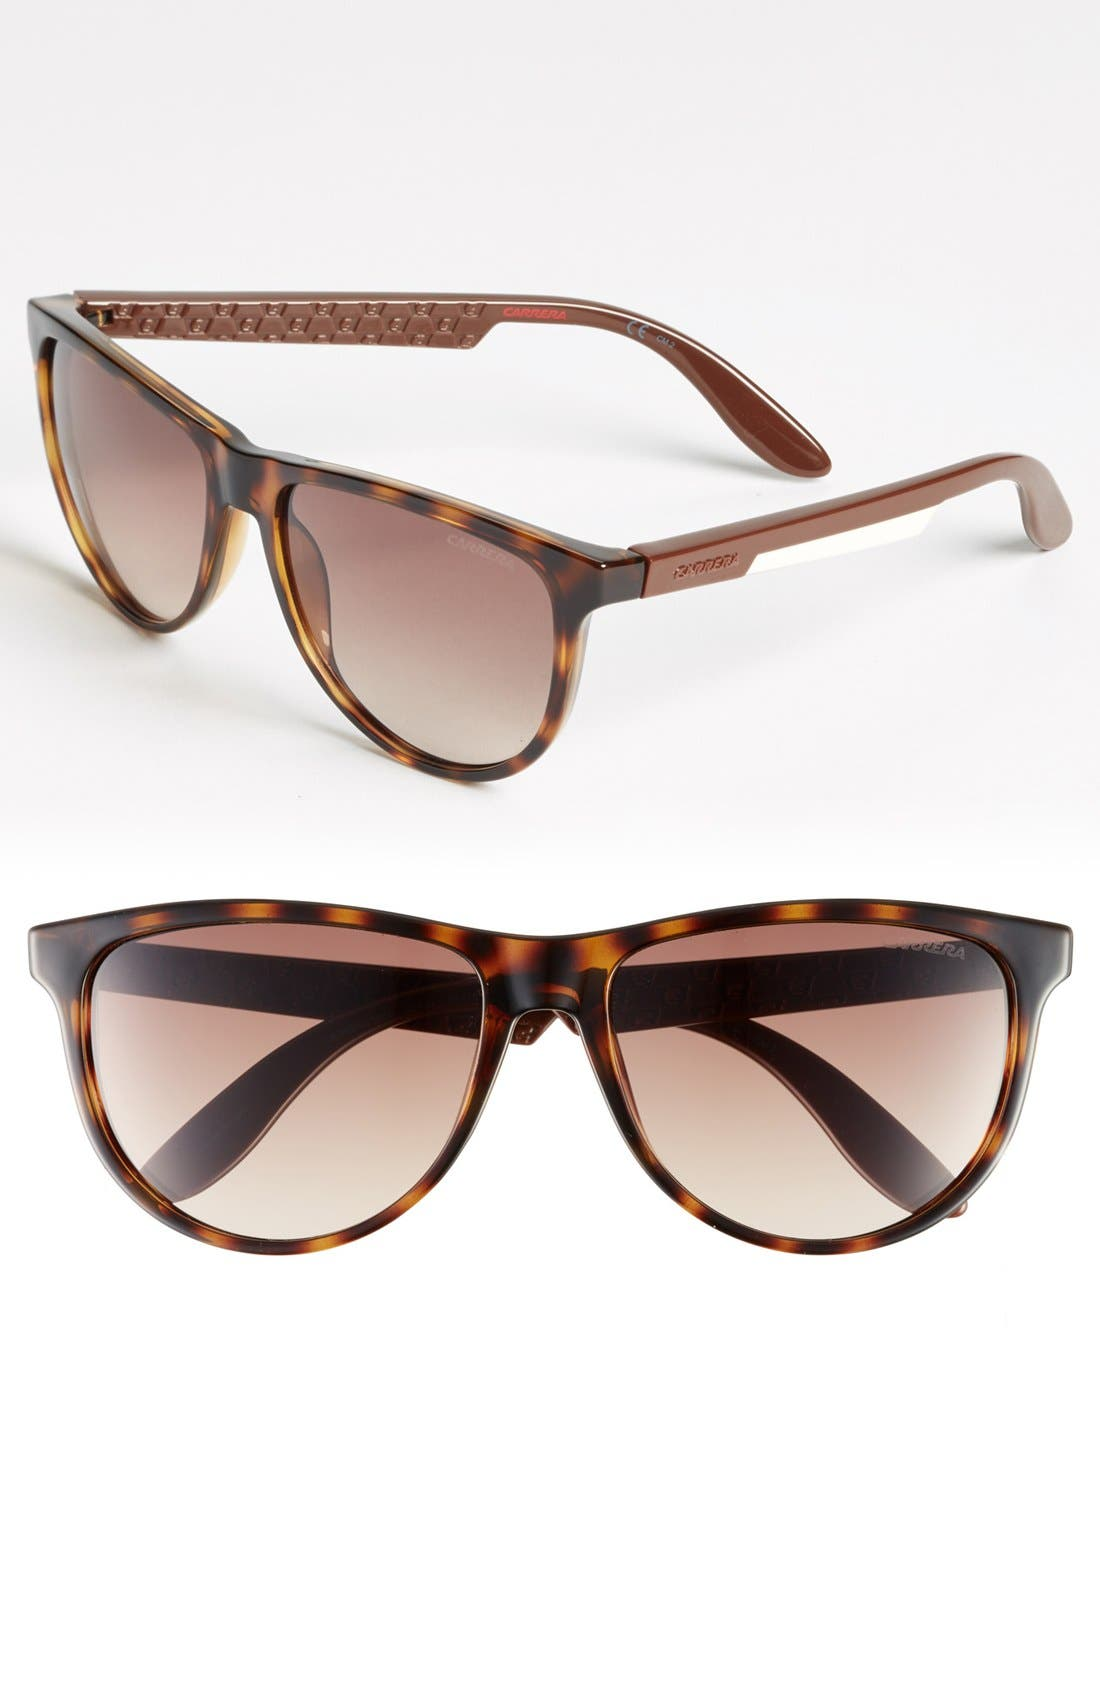 Alternate Image 1 Selected - Carrera Eyewear 56mm Retro Sunglasses